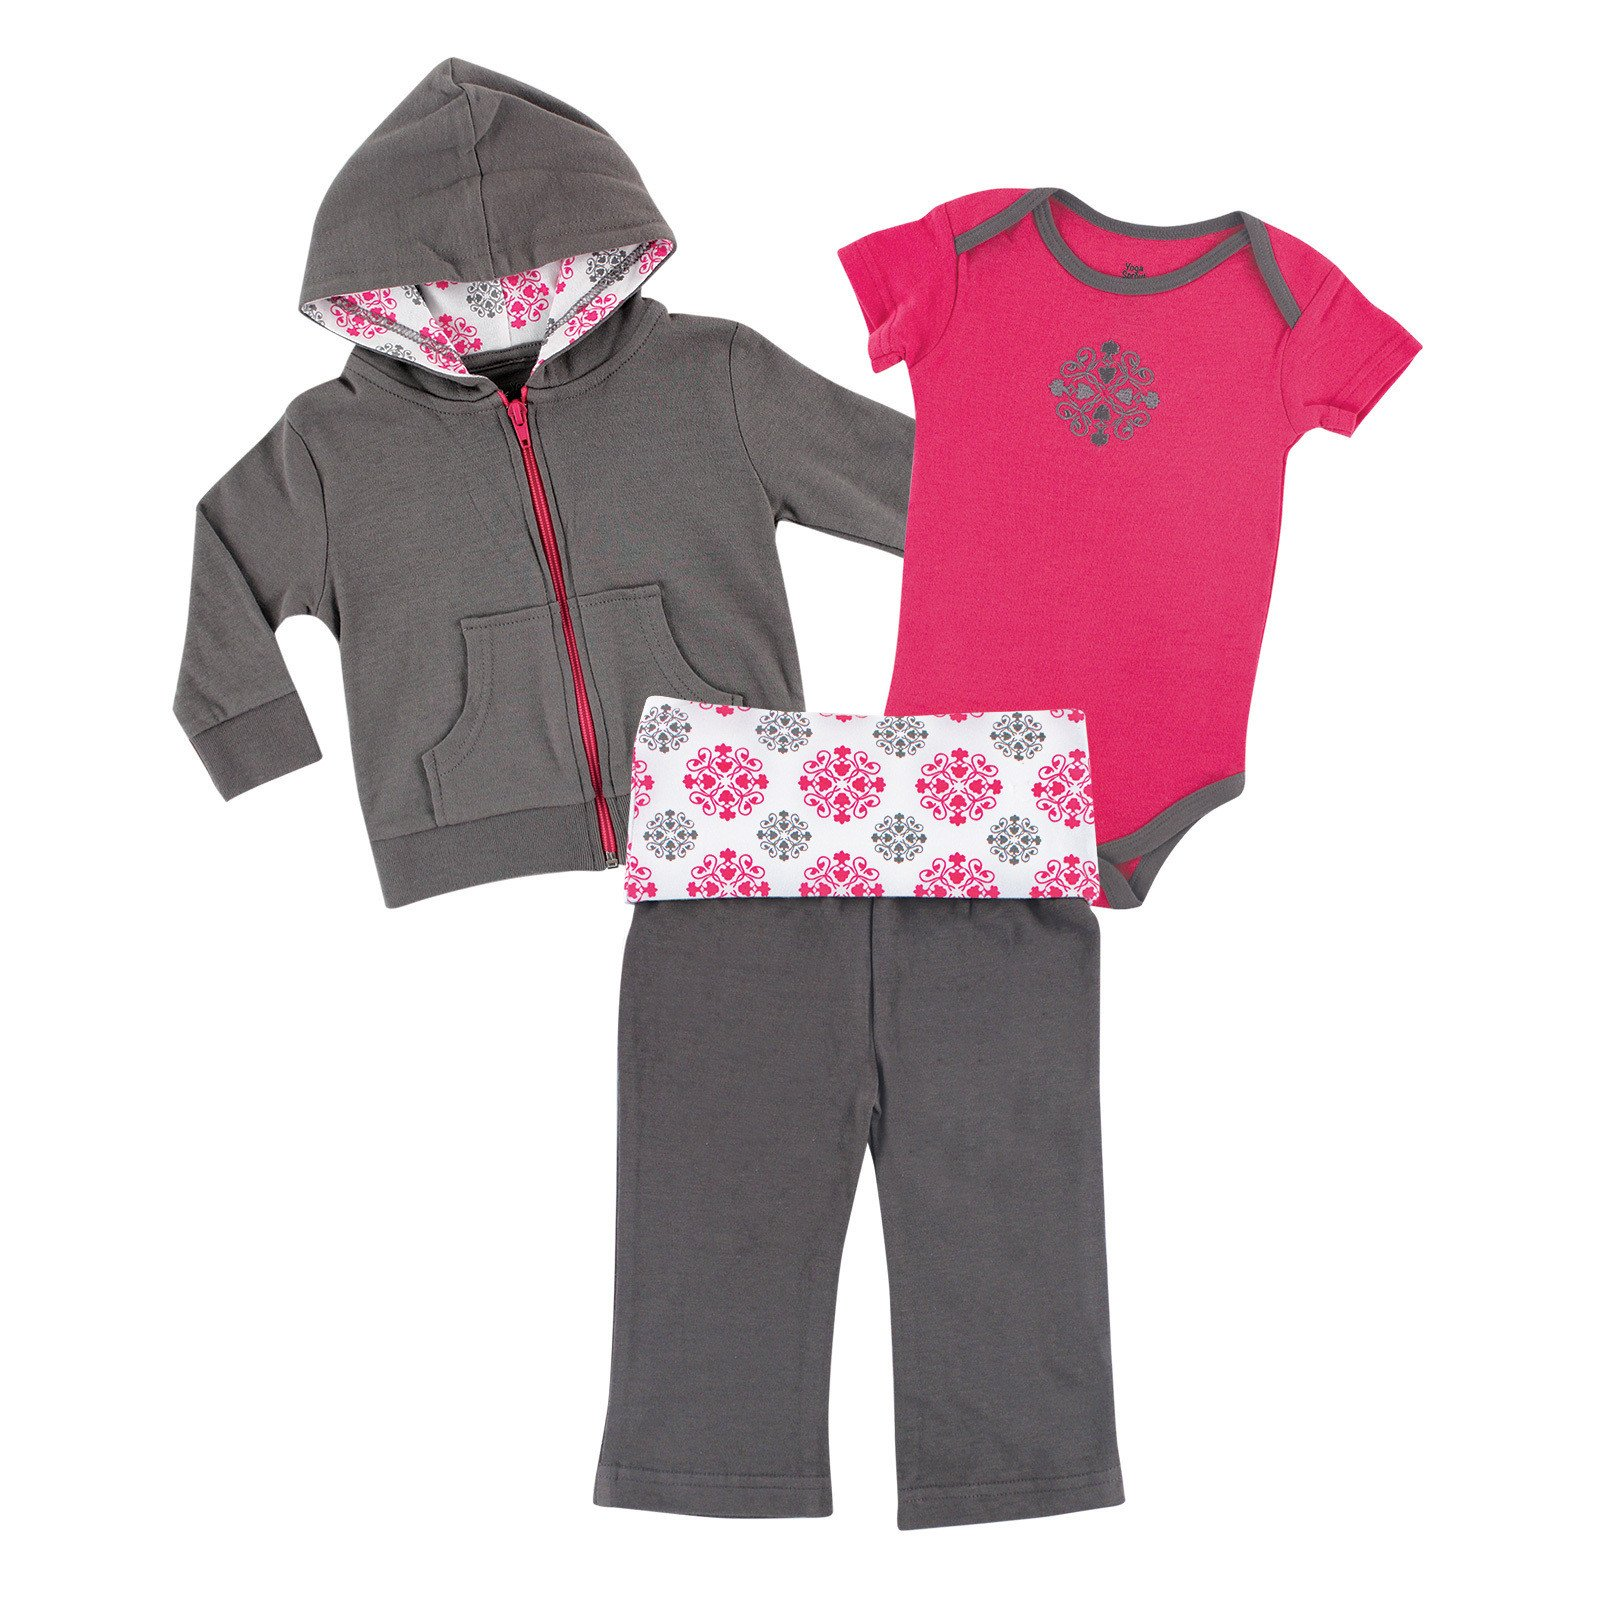 Yoga Sprout Baby Infant 3 Piece Jacket, Top and Pant Set, Pink Medallion, 12-18 Months (18M)